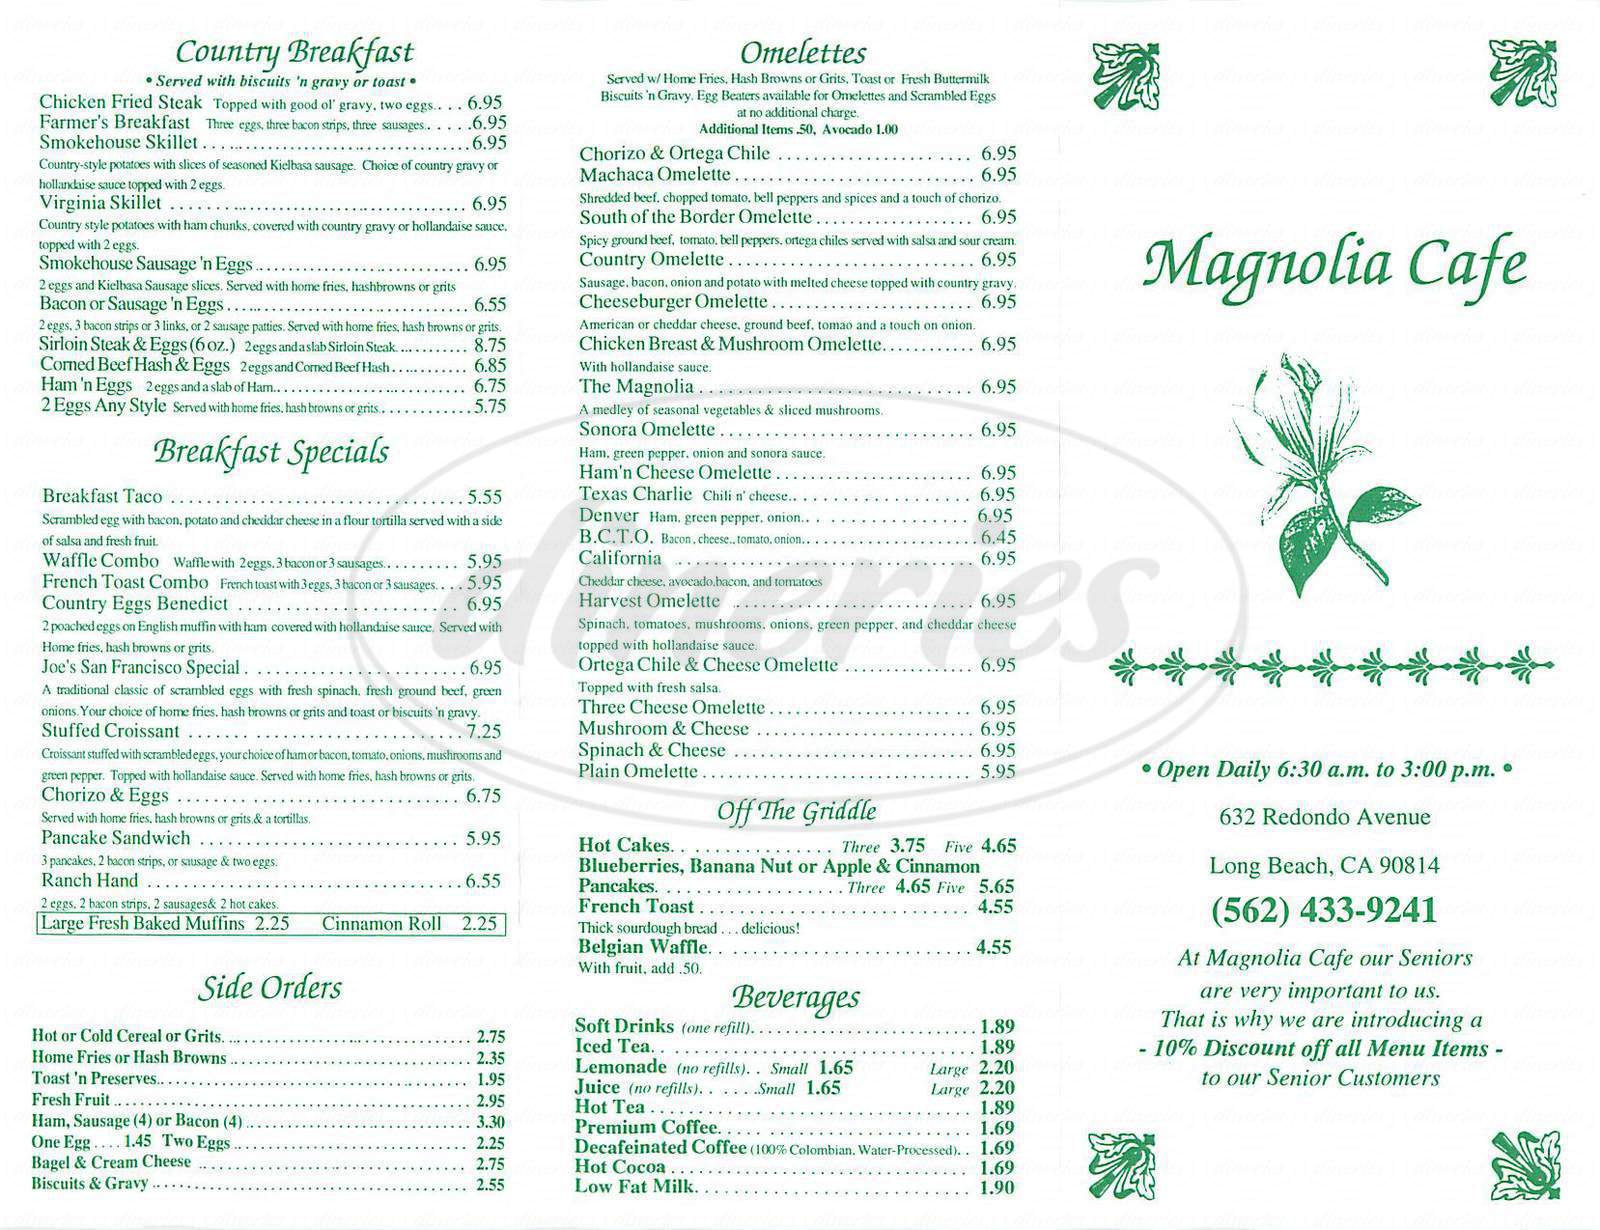 menu for Magnolia Café